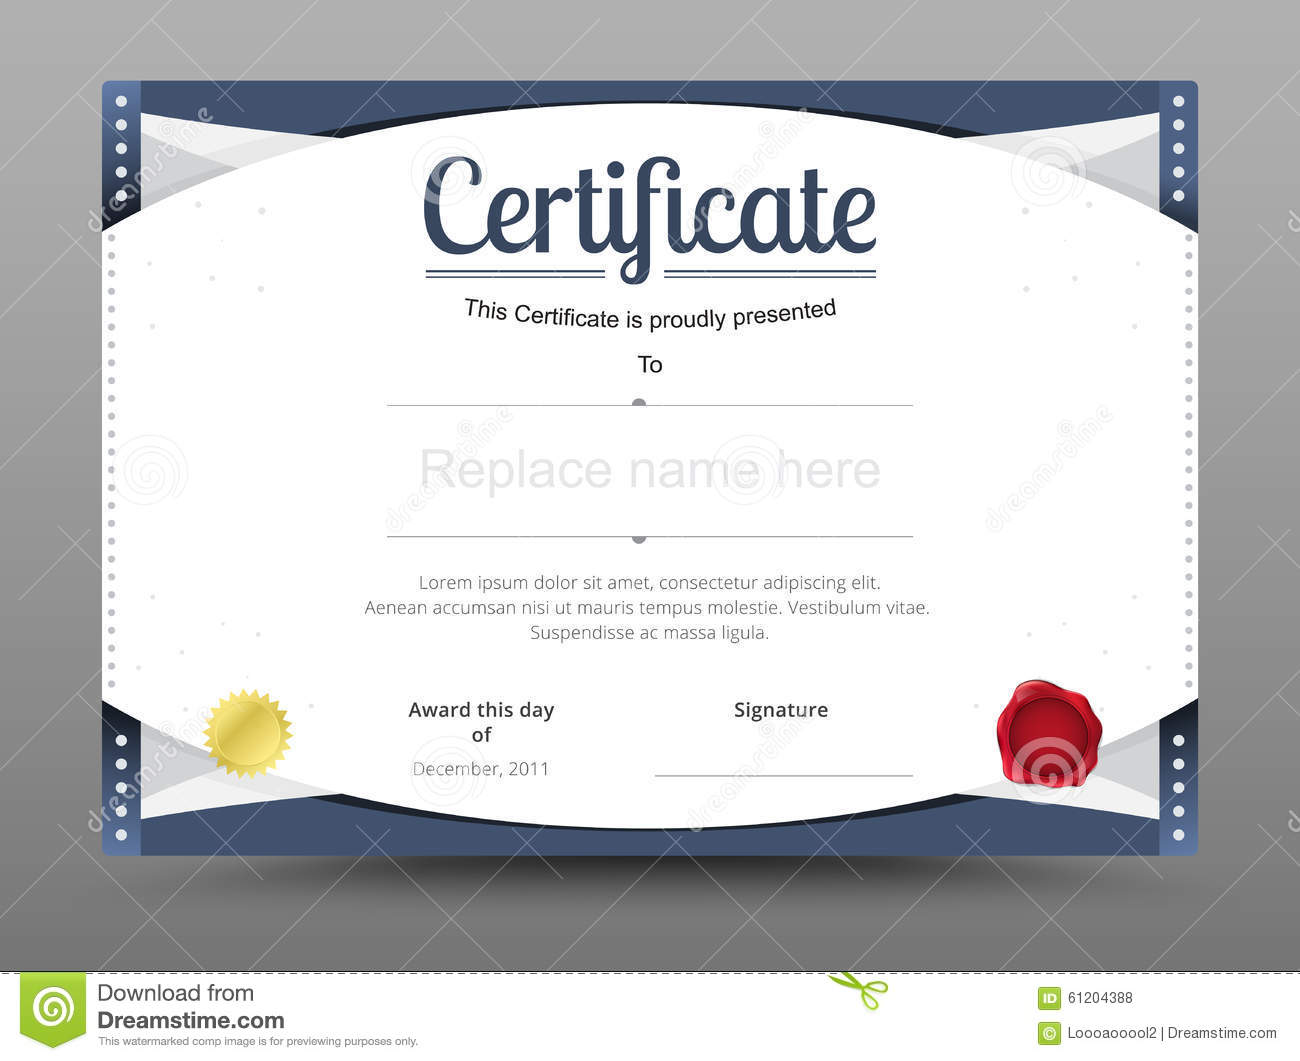 Elegant Certificate Template. Business Certificate Formal Theme.  Business Certificates Templates